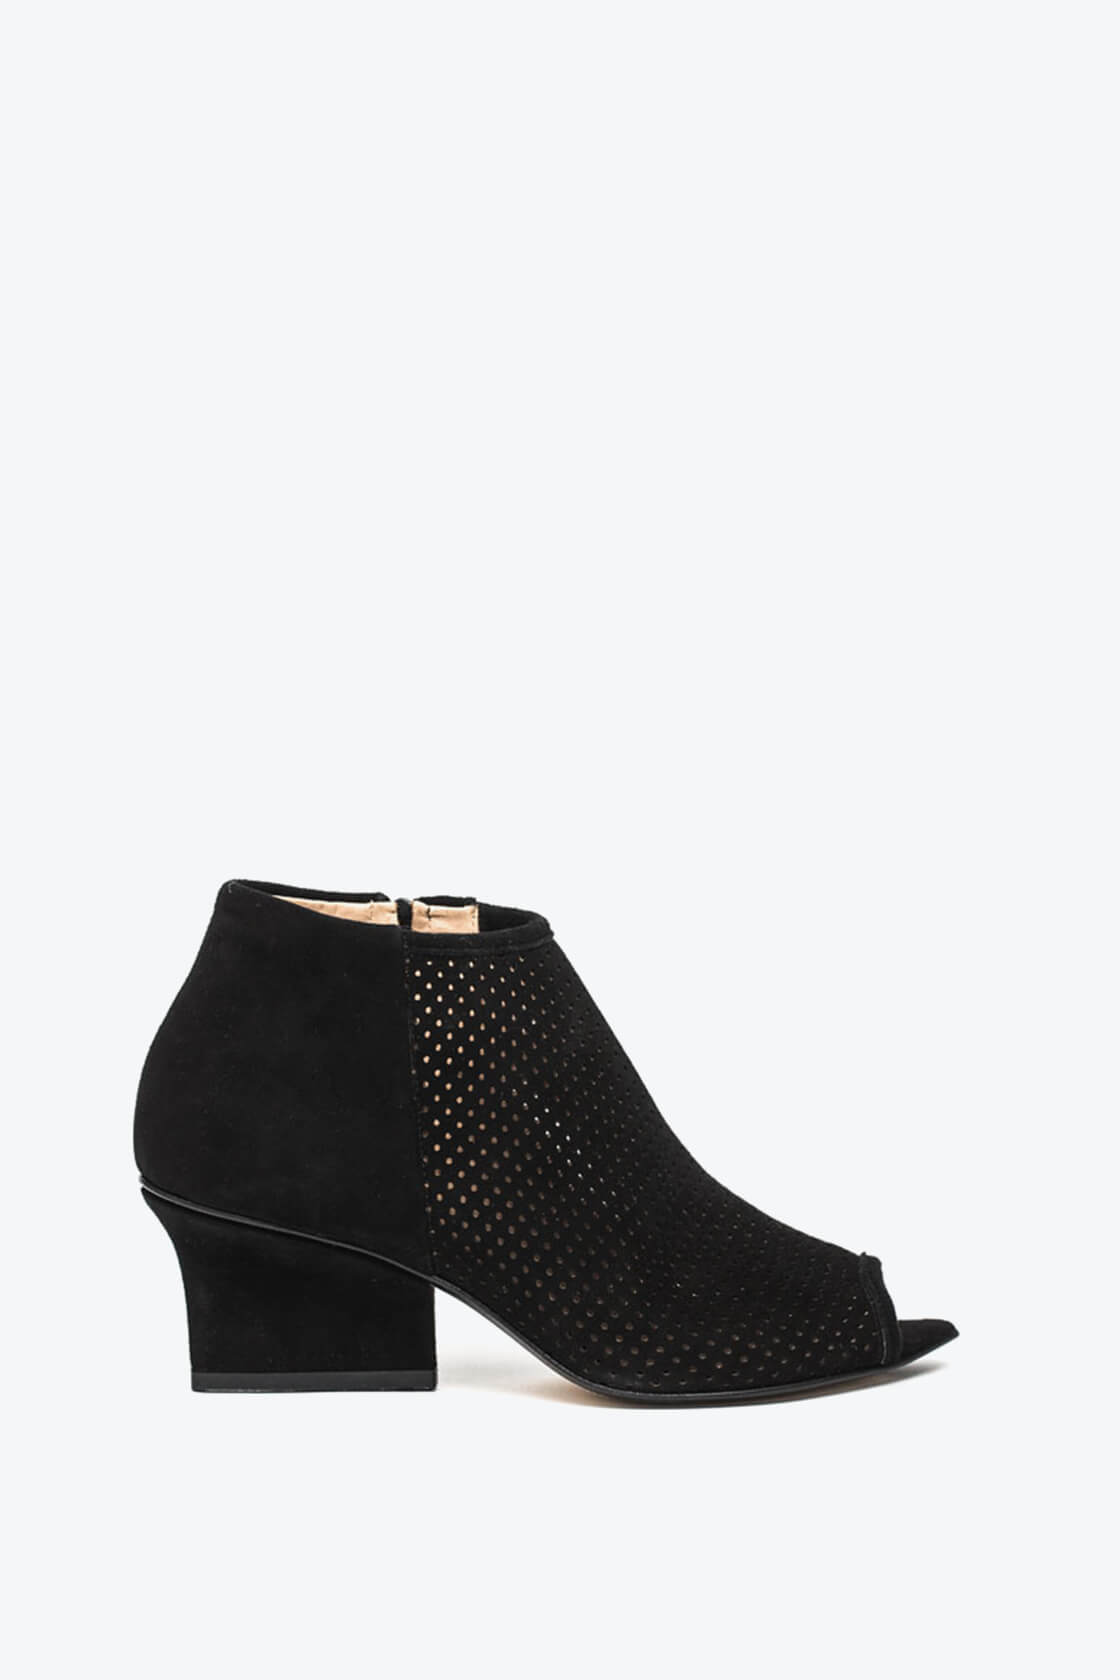 EJK0000028 Roxette ankle boots black 1